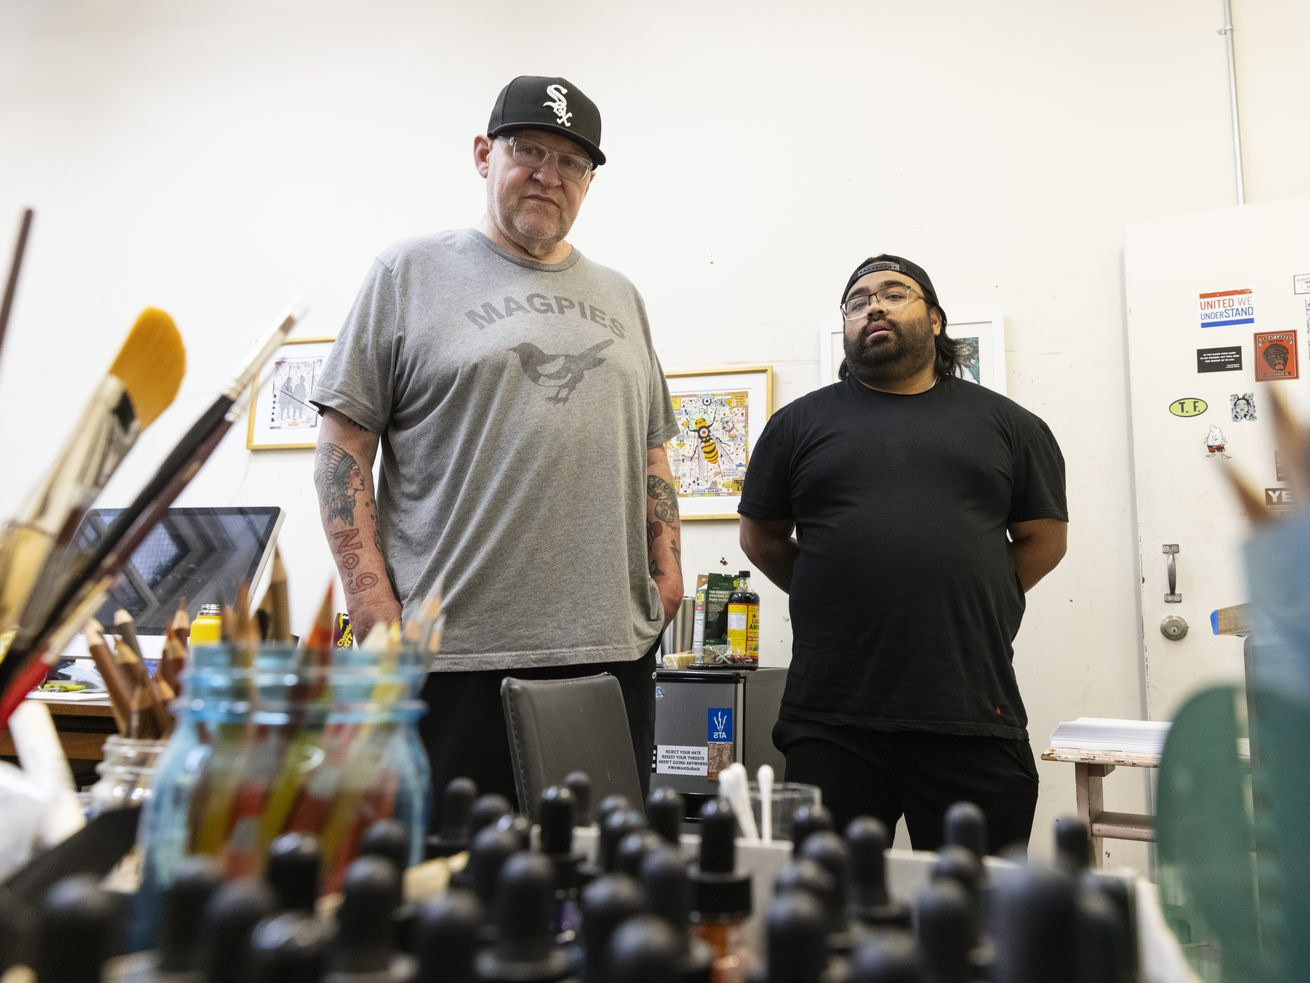 Muralists Tony Fitzpatrick, left, and Danny Torres, right, pose for a portrait at their studio in Wicker Park on Friday.